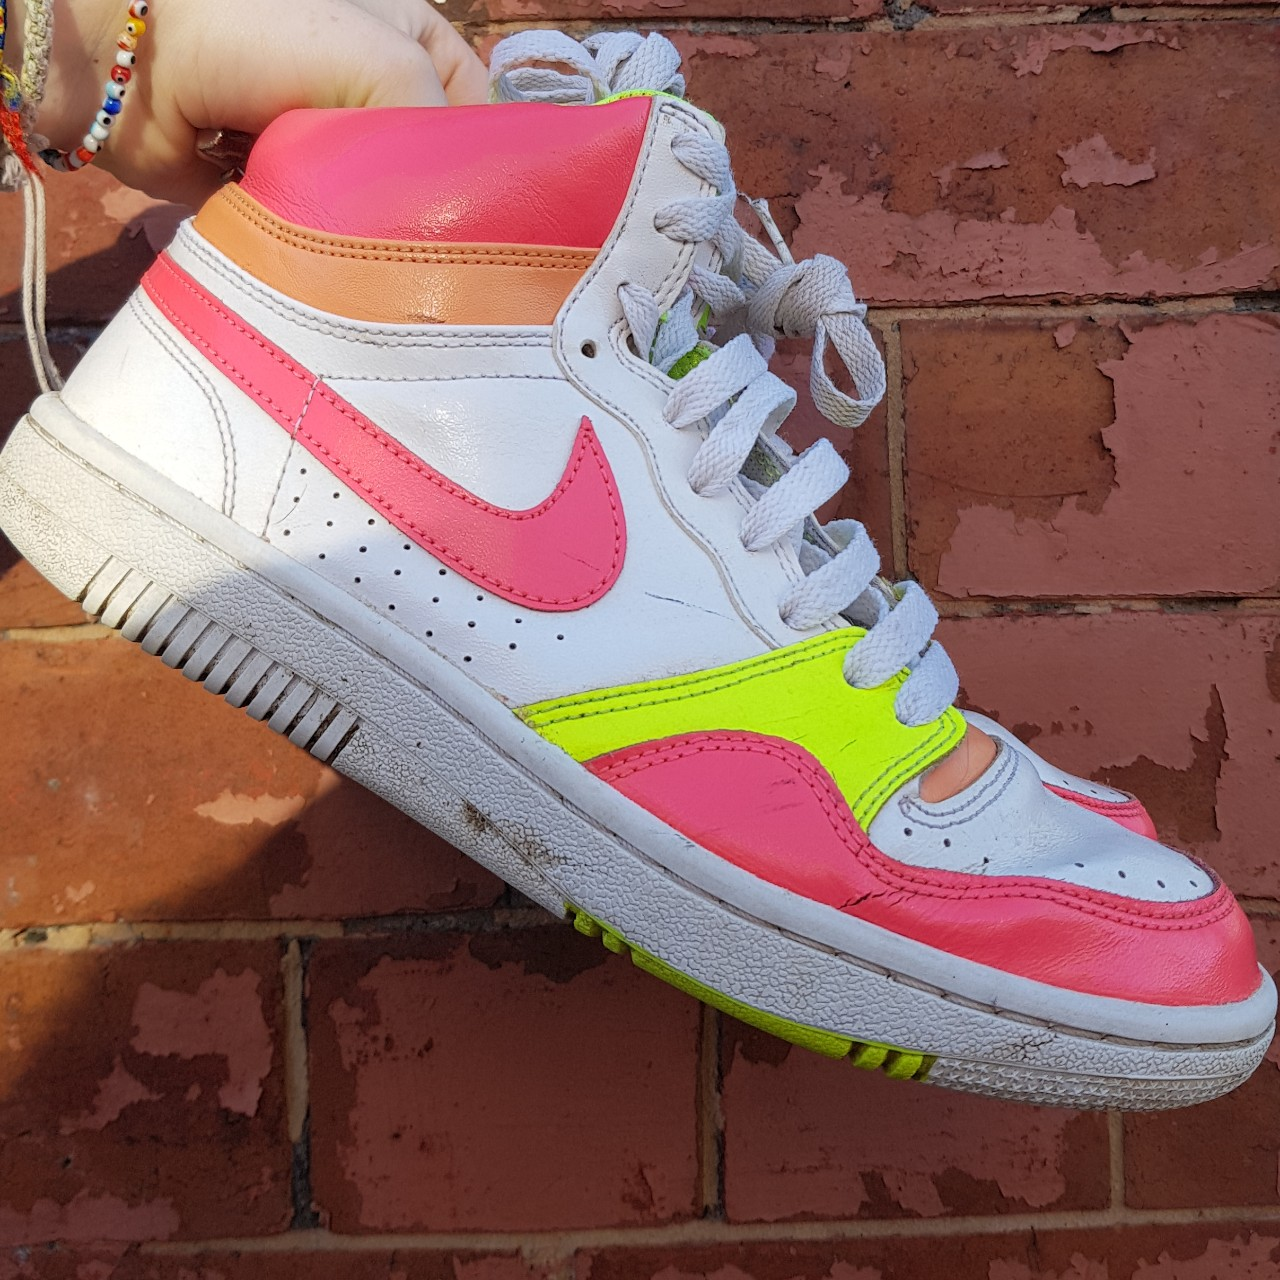 Size 6 Nike High Top Trainers Air Force 1 With Neon Depop